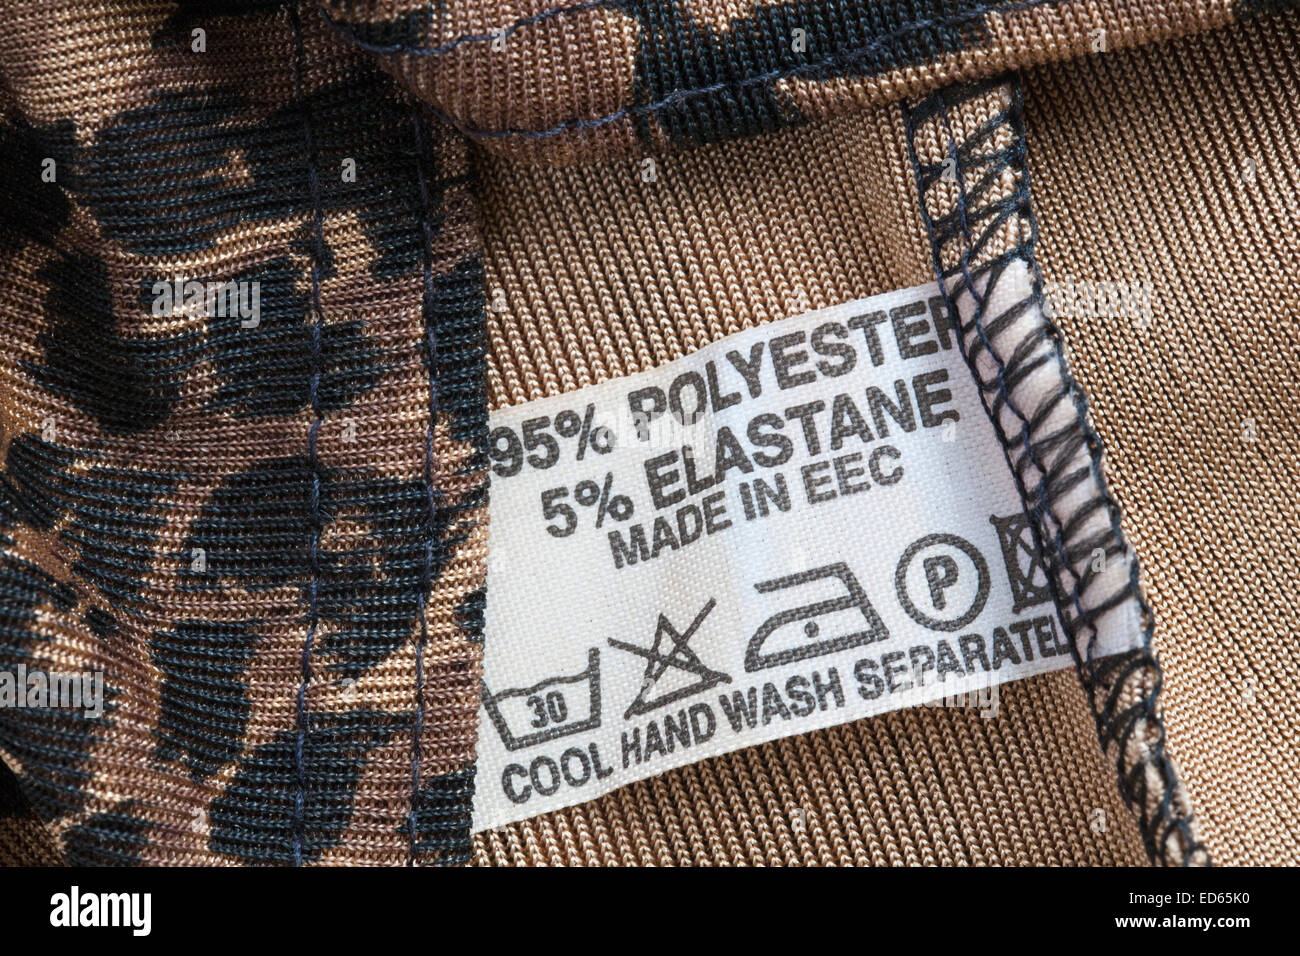 65% polyester 5% elastane made in EEC label in garment - Stock Image